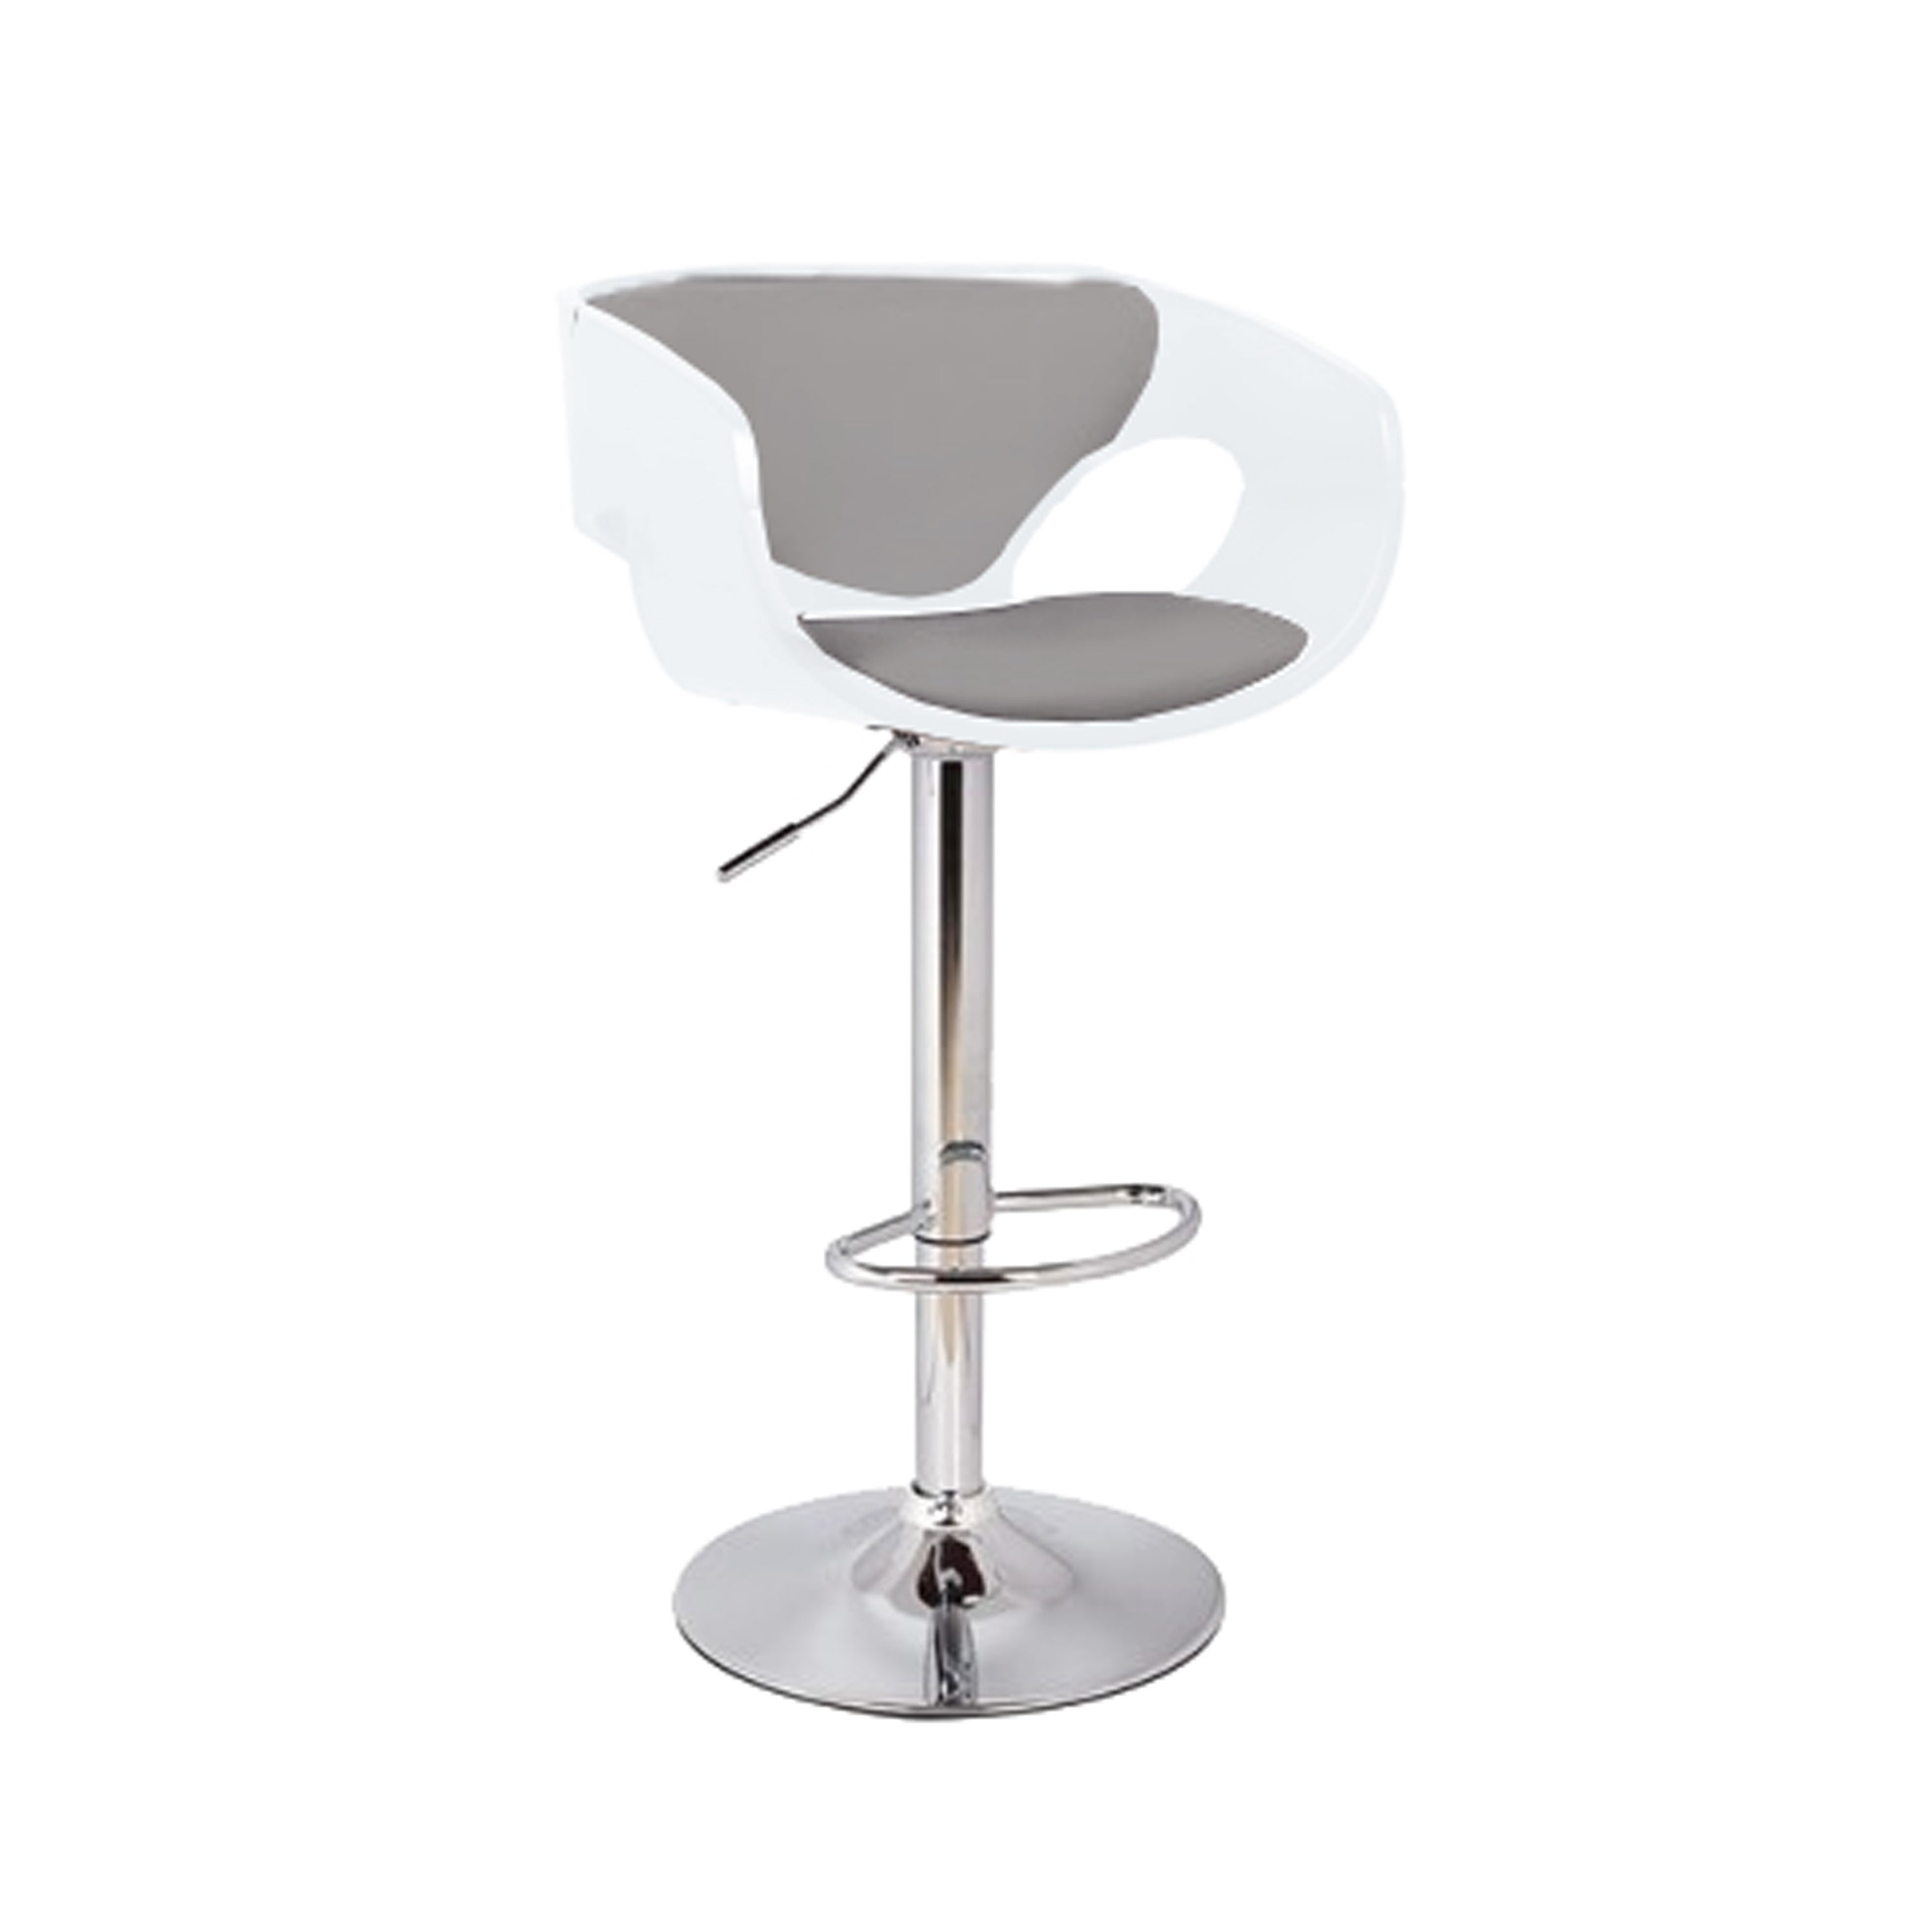 home for stool mesmerizing at stylecounter fascinating white target nice height persoperperso grey stools bar kitchen upholstered red countertop furniture backless swivel trendy